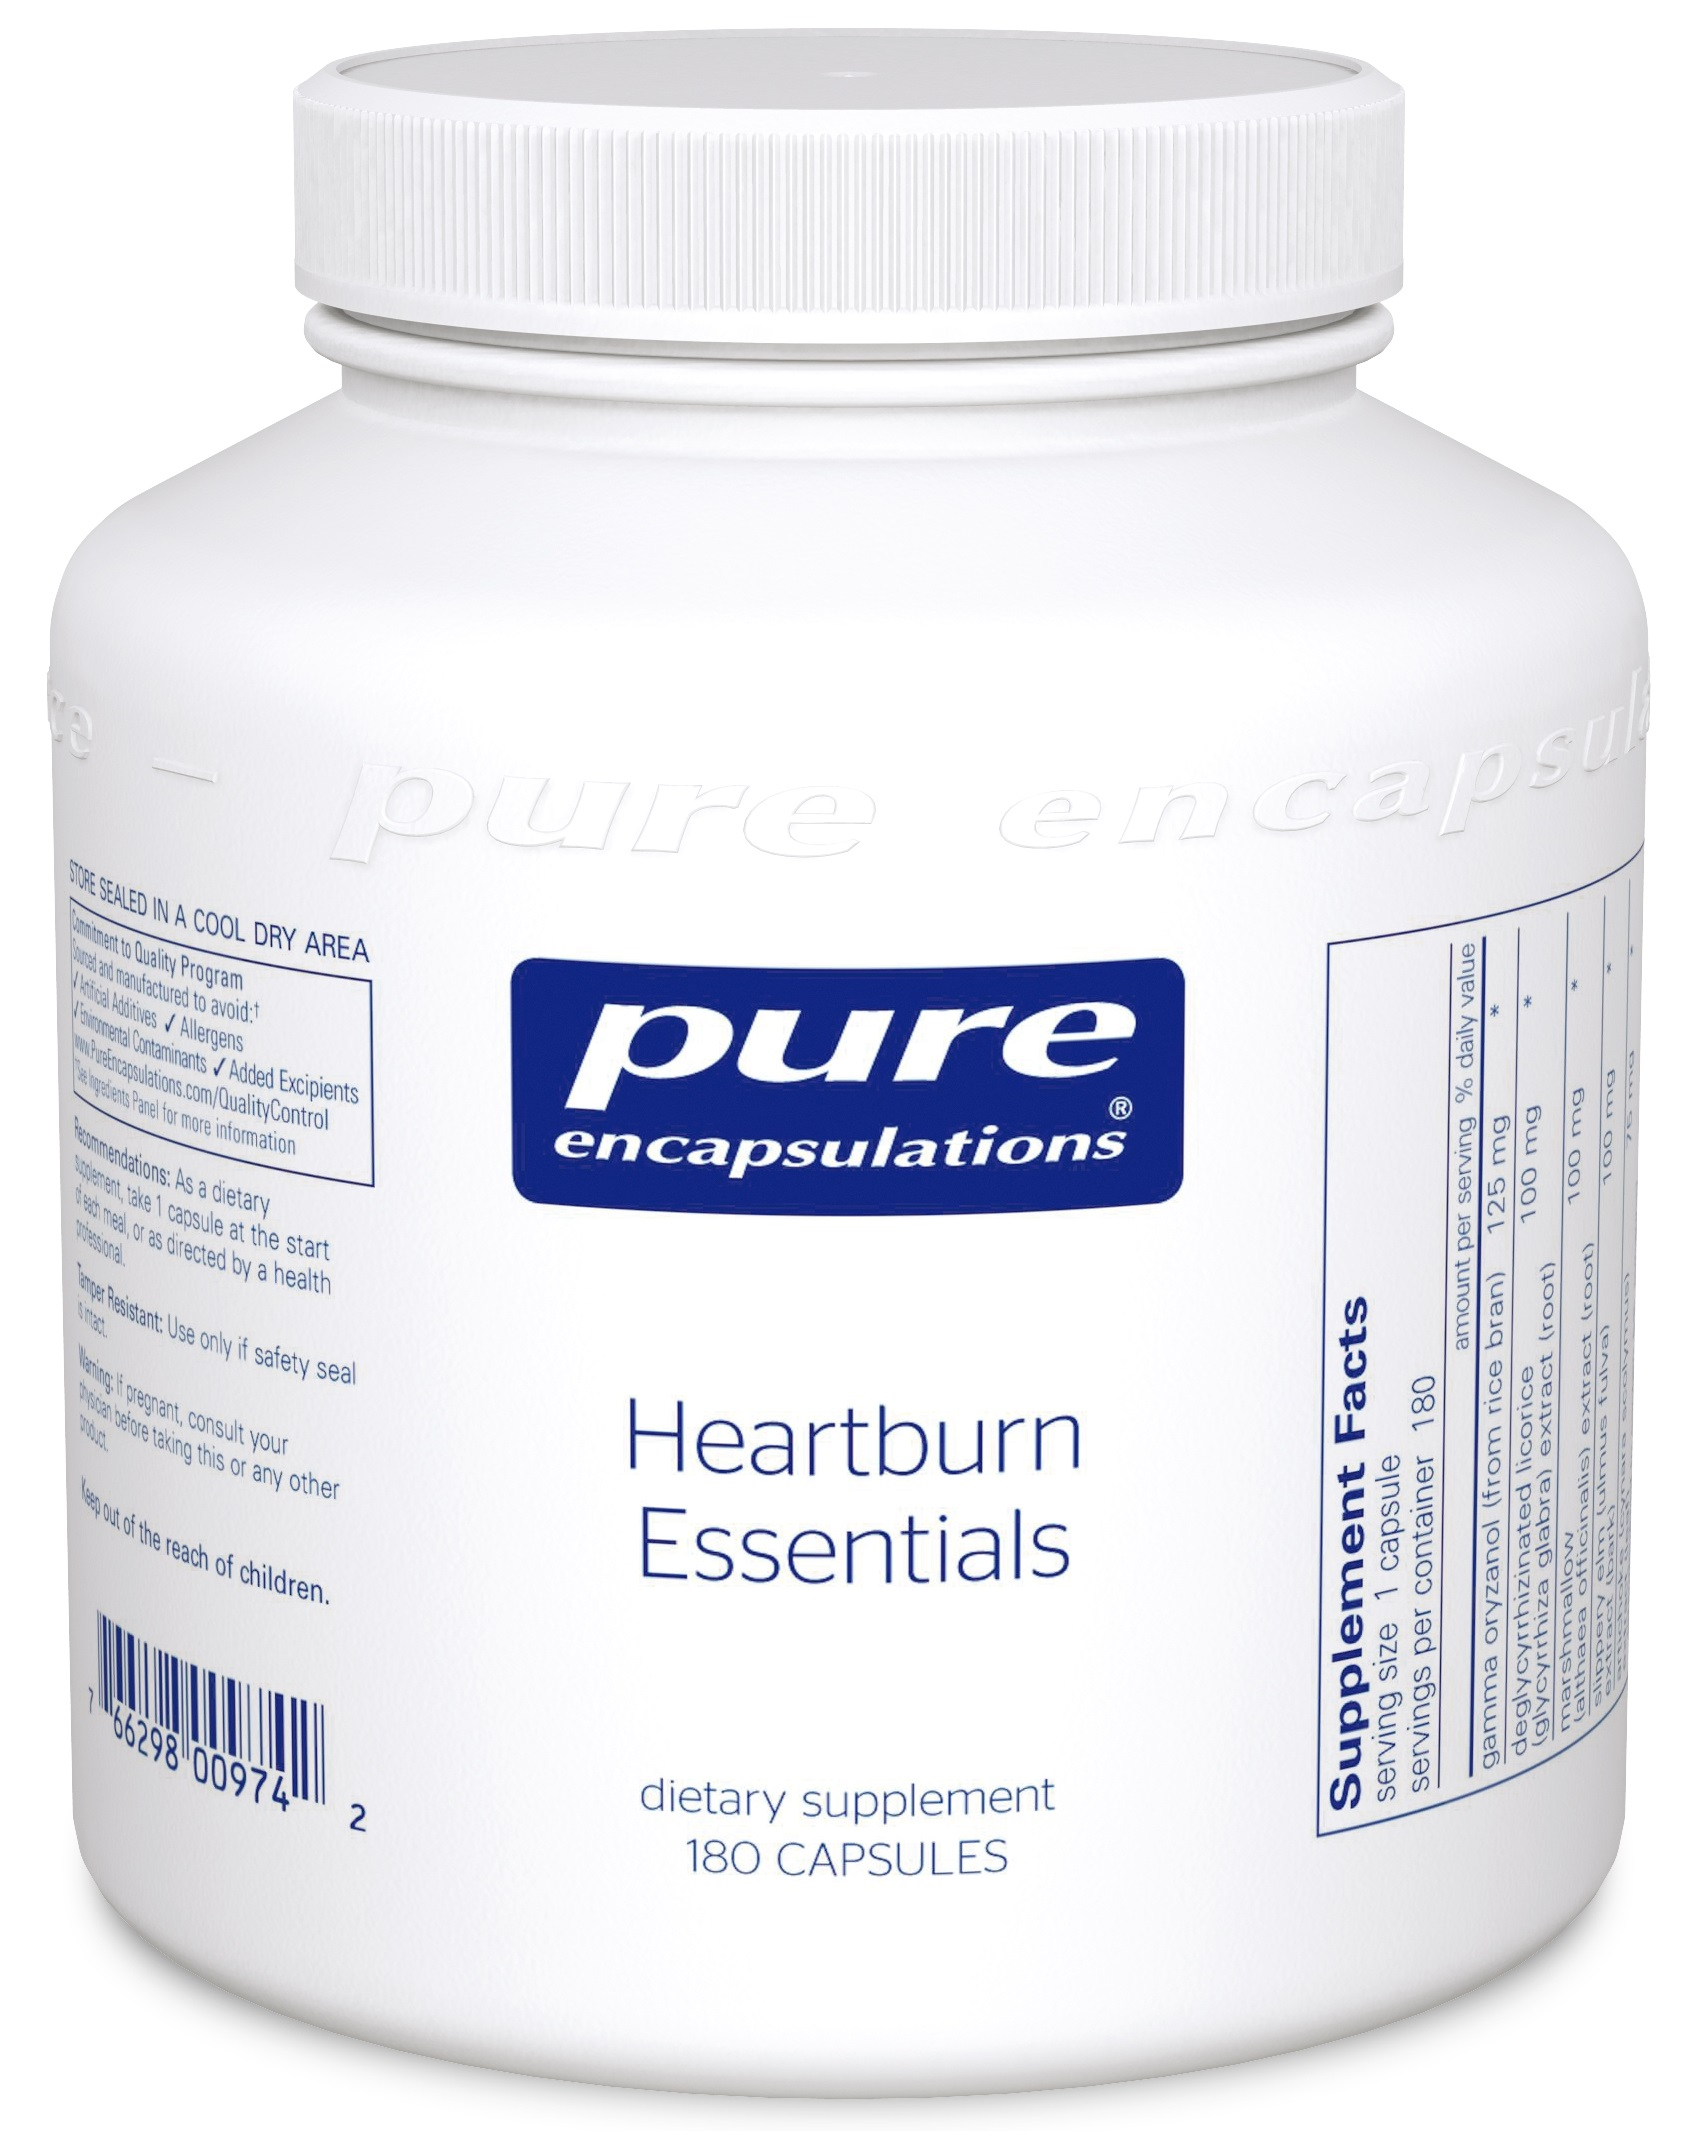 Pure Encapsulations Heartburn Essentials*